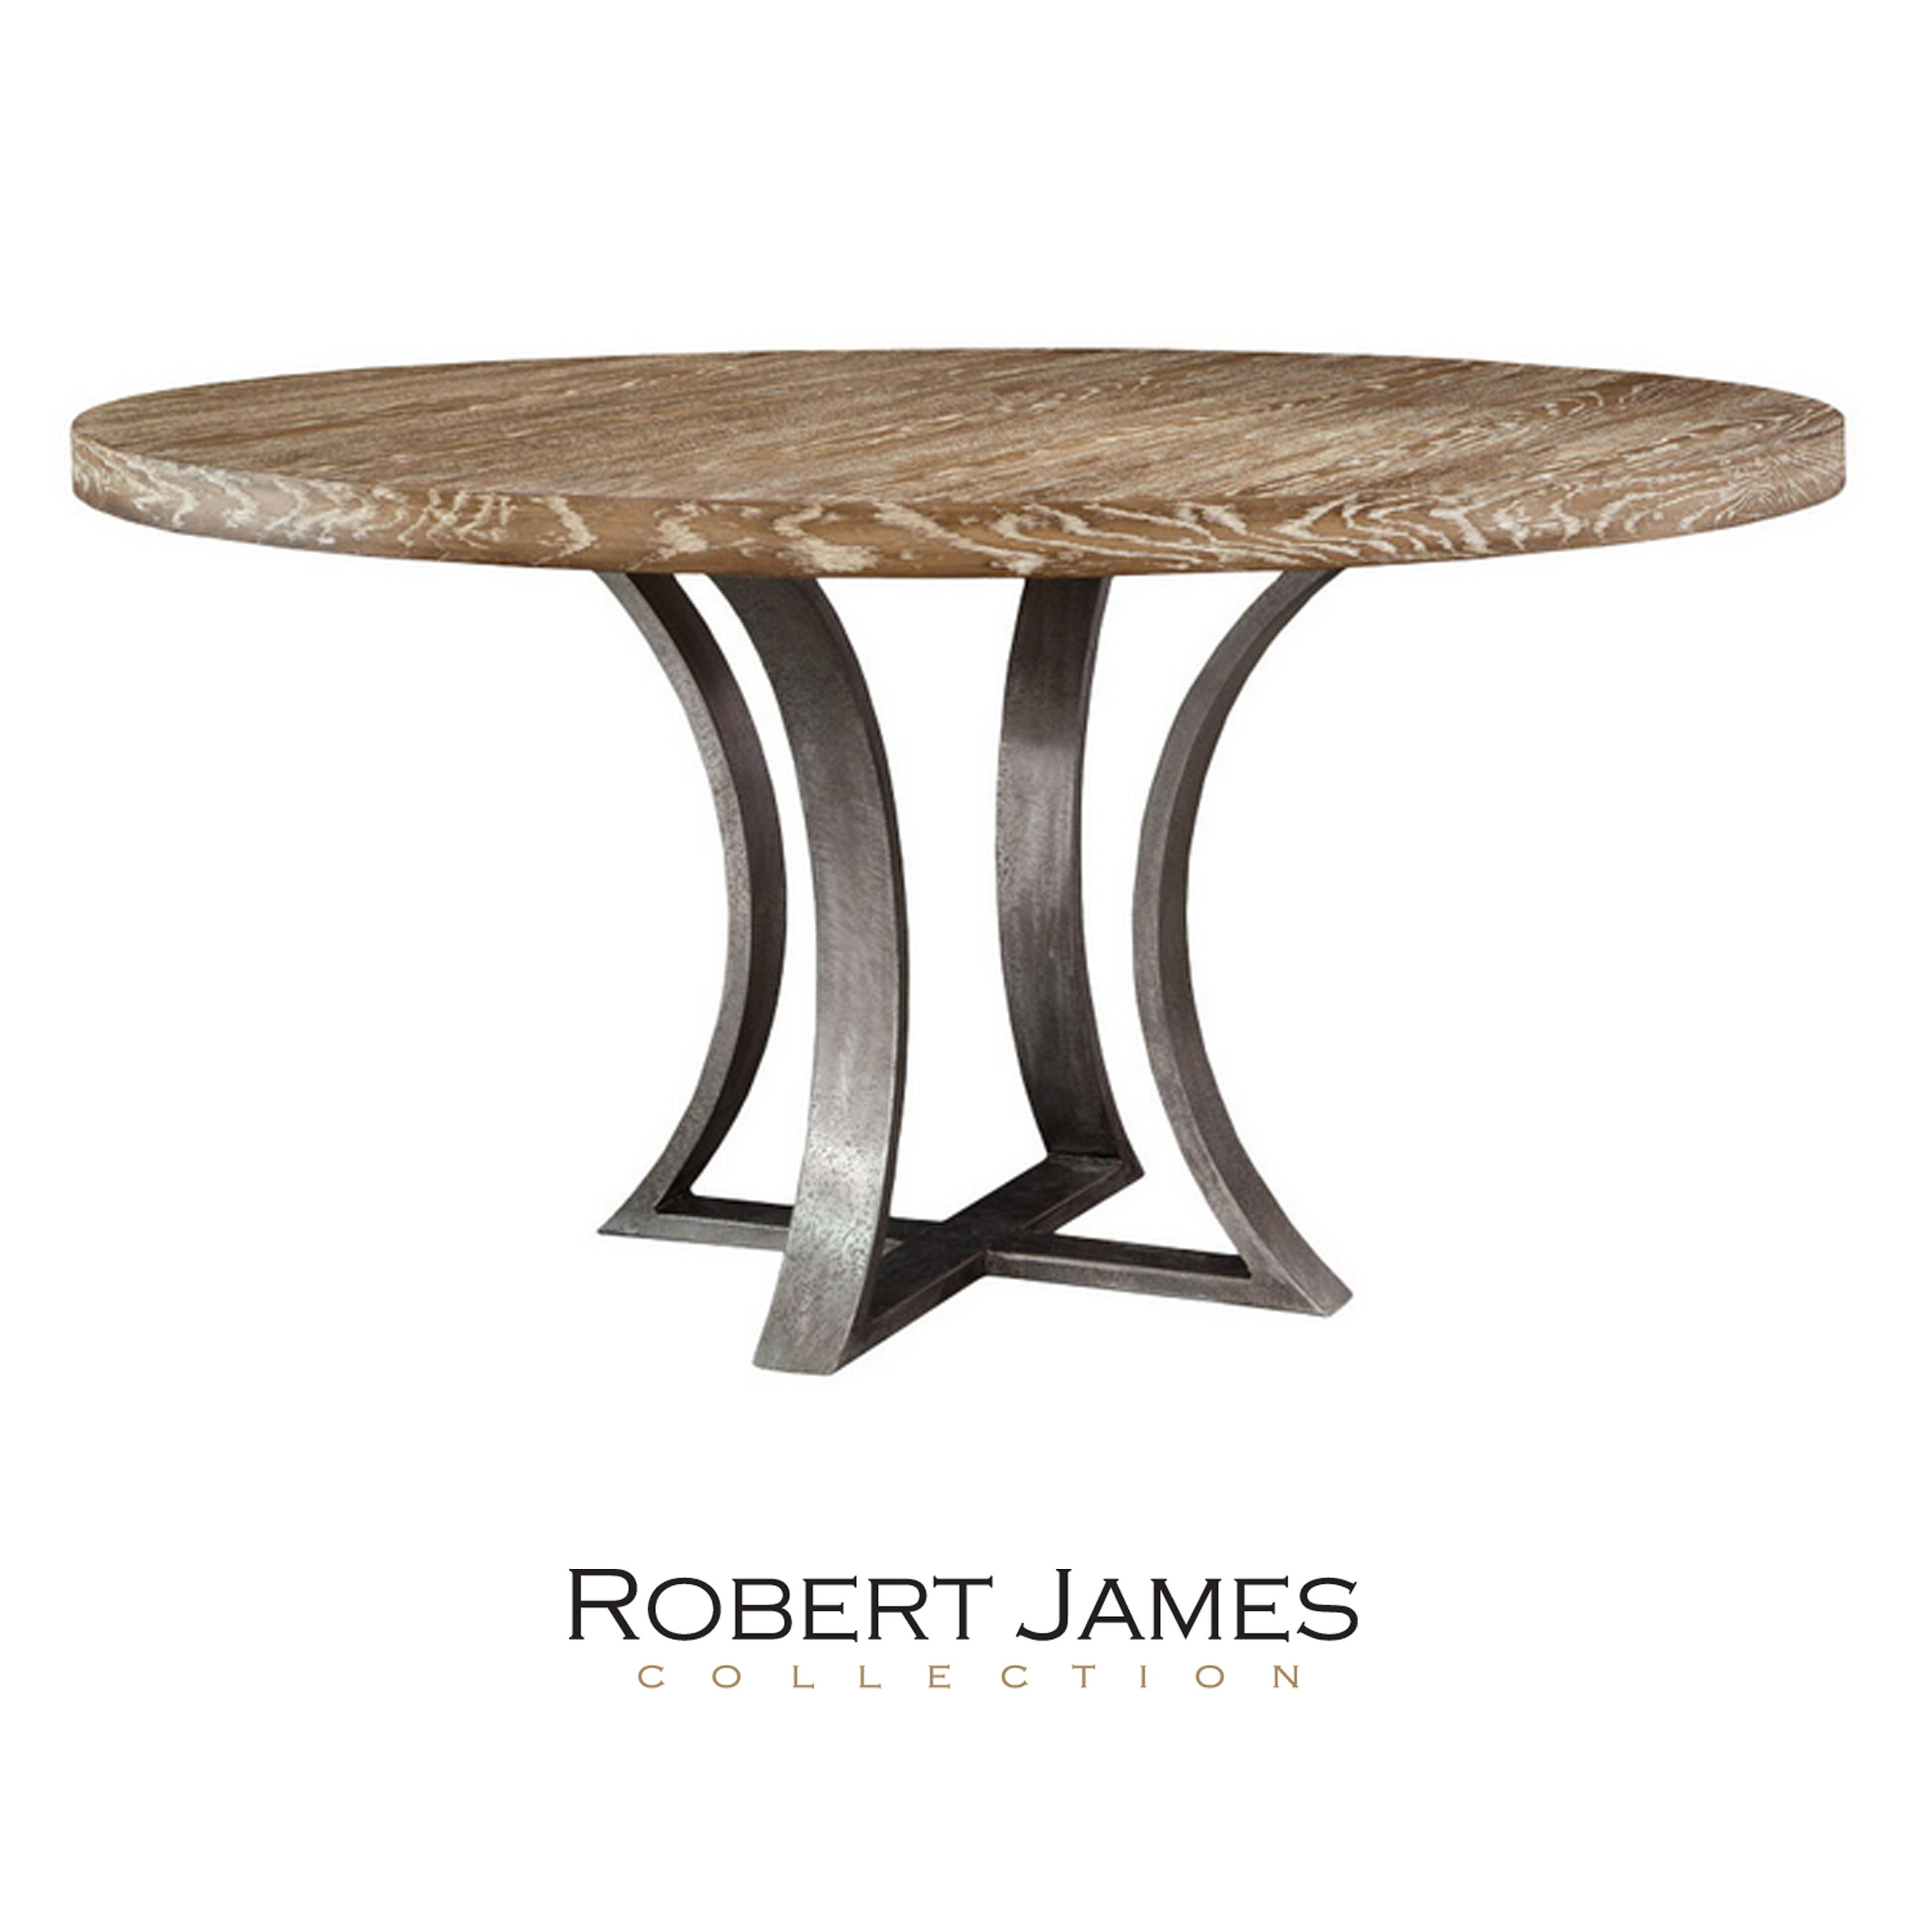 The Curved Steel Base Beautifully Compliments The Round Top On The New Tamarind Dining Table Handmade Locally Wit Dining Table Contemporary Dining Table Table